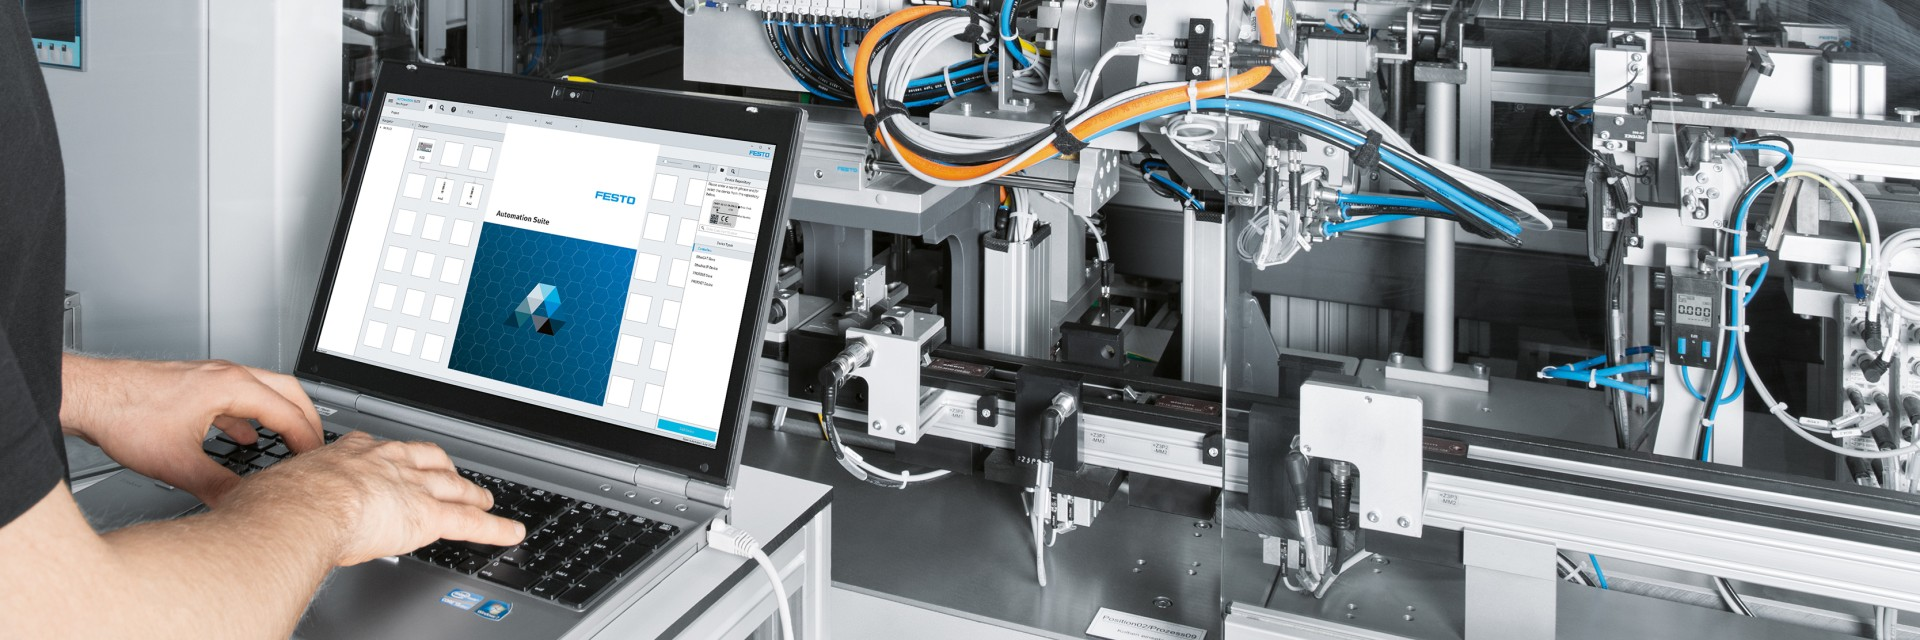 Comissionamento do sistema: Festo Automation Suite